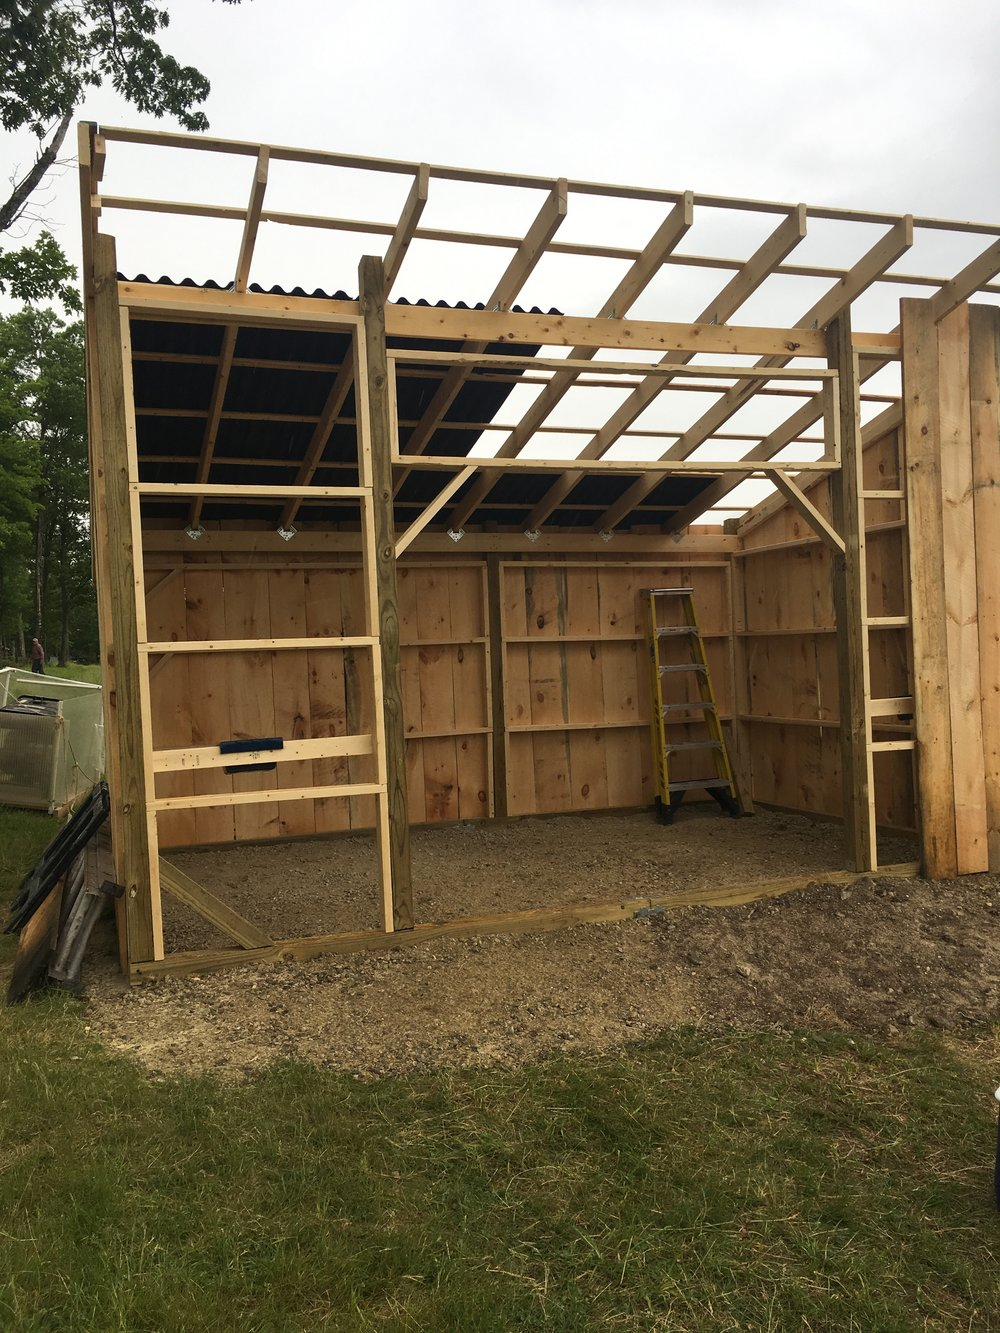 Construction on the new Alpaca Barn